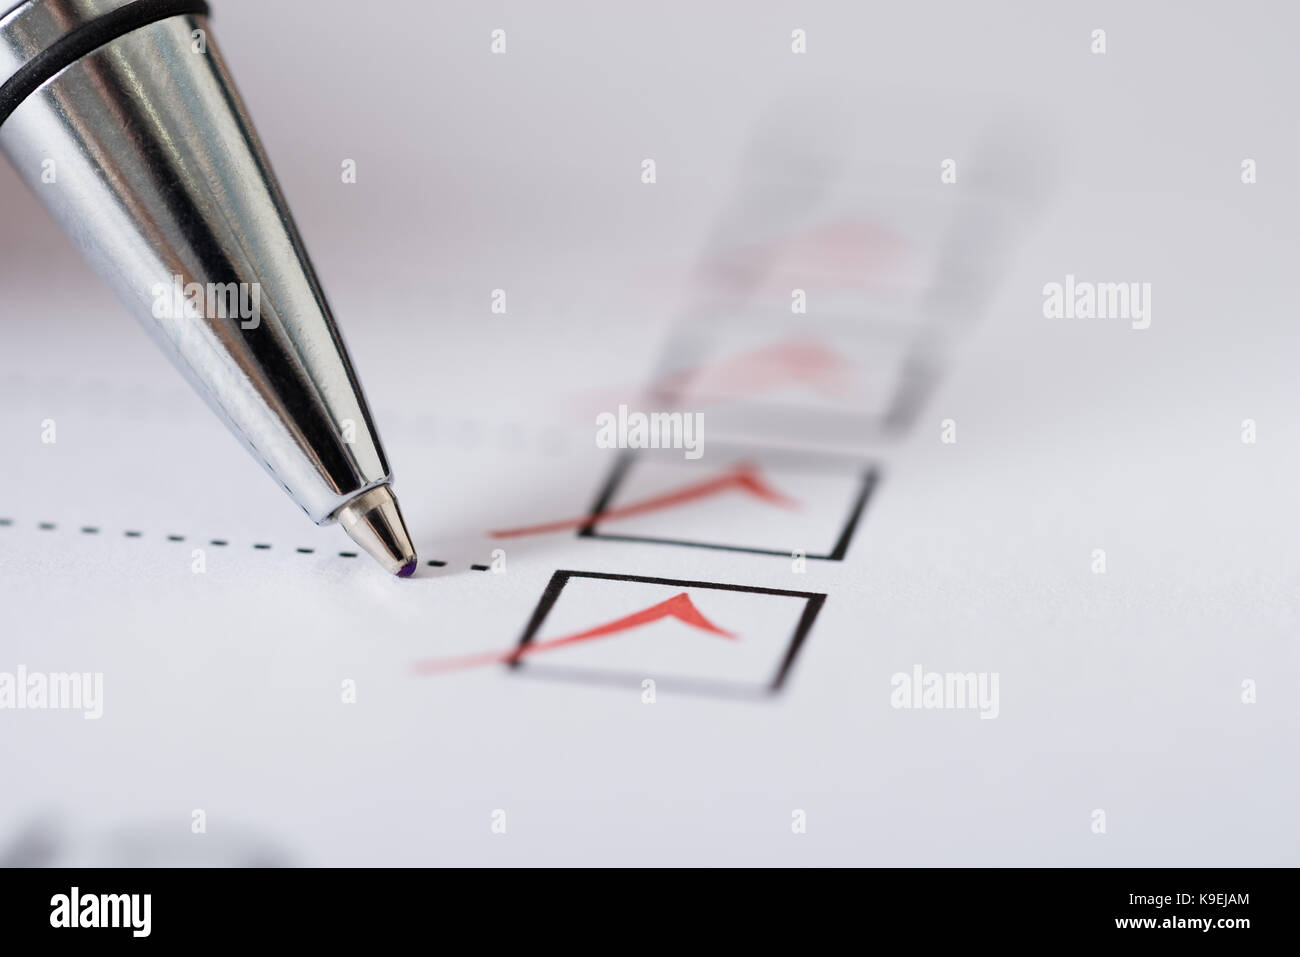 Close-up Of Silver Pen Over Filled Checkboxes In Form - Stock Image